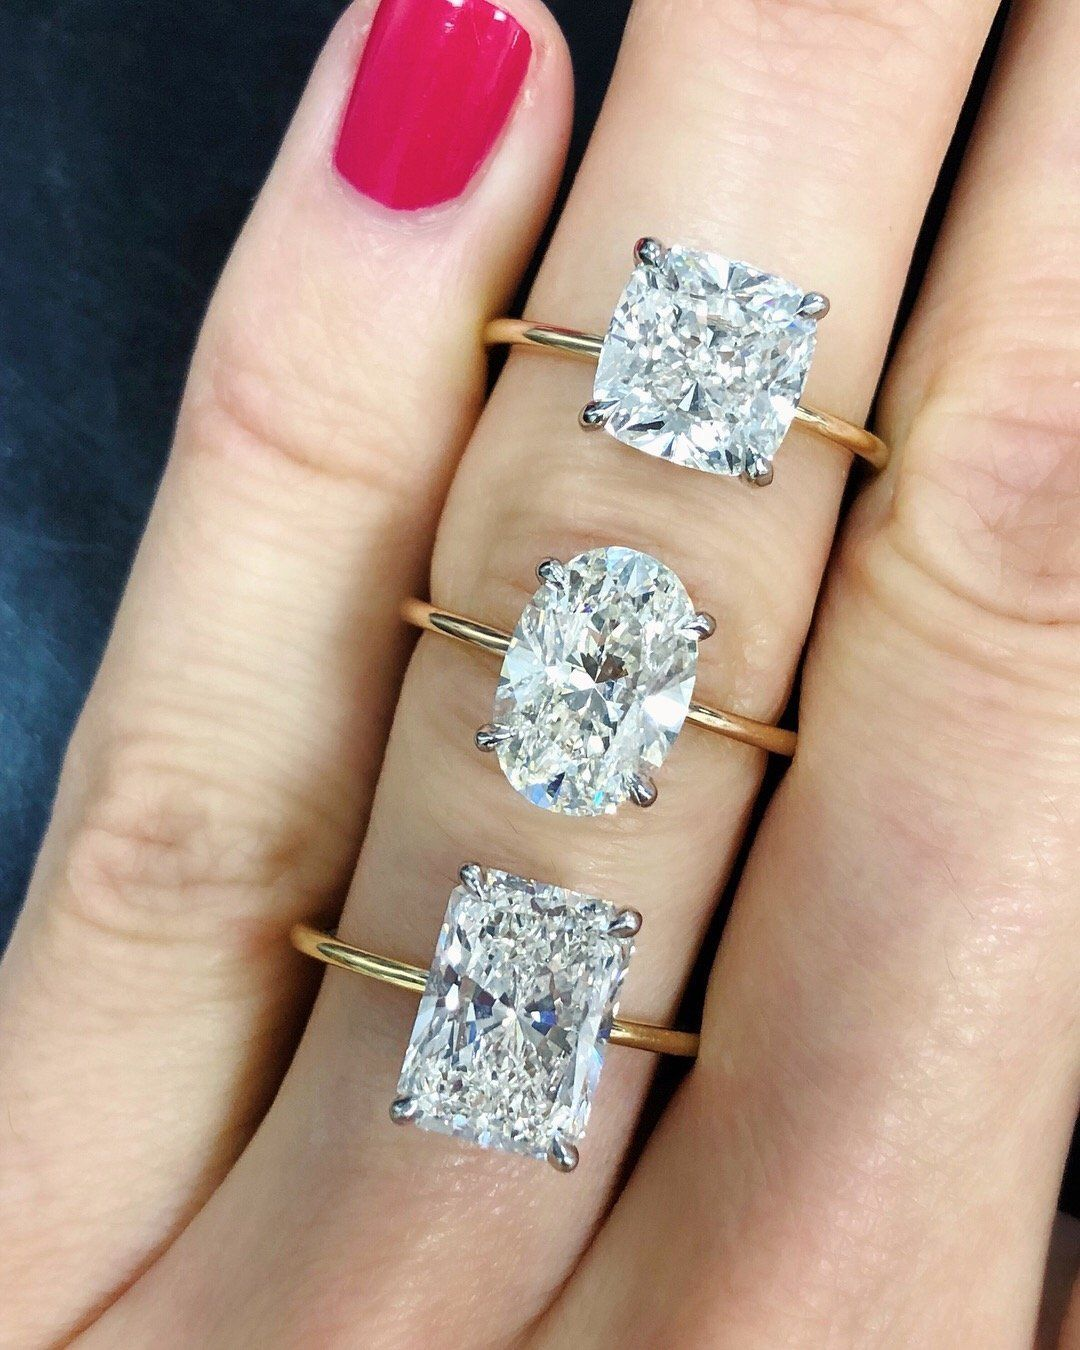 The Diamond Is Sure To Take Center Stage On This Whisper Thin Band Diamonds Available In All Shapes Sizes And Qualities Setting Platinum Or